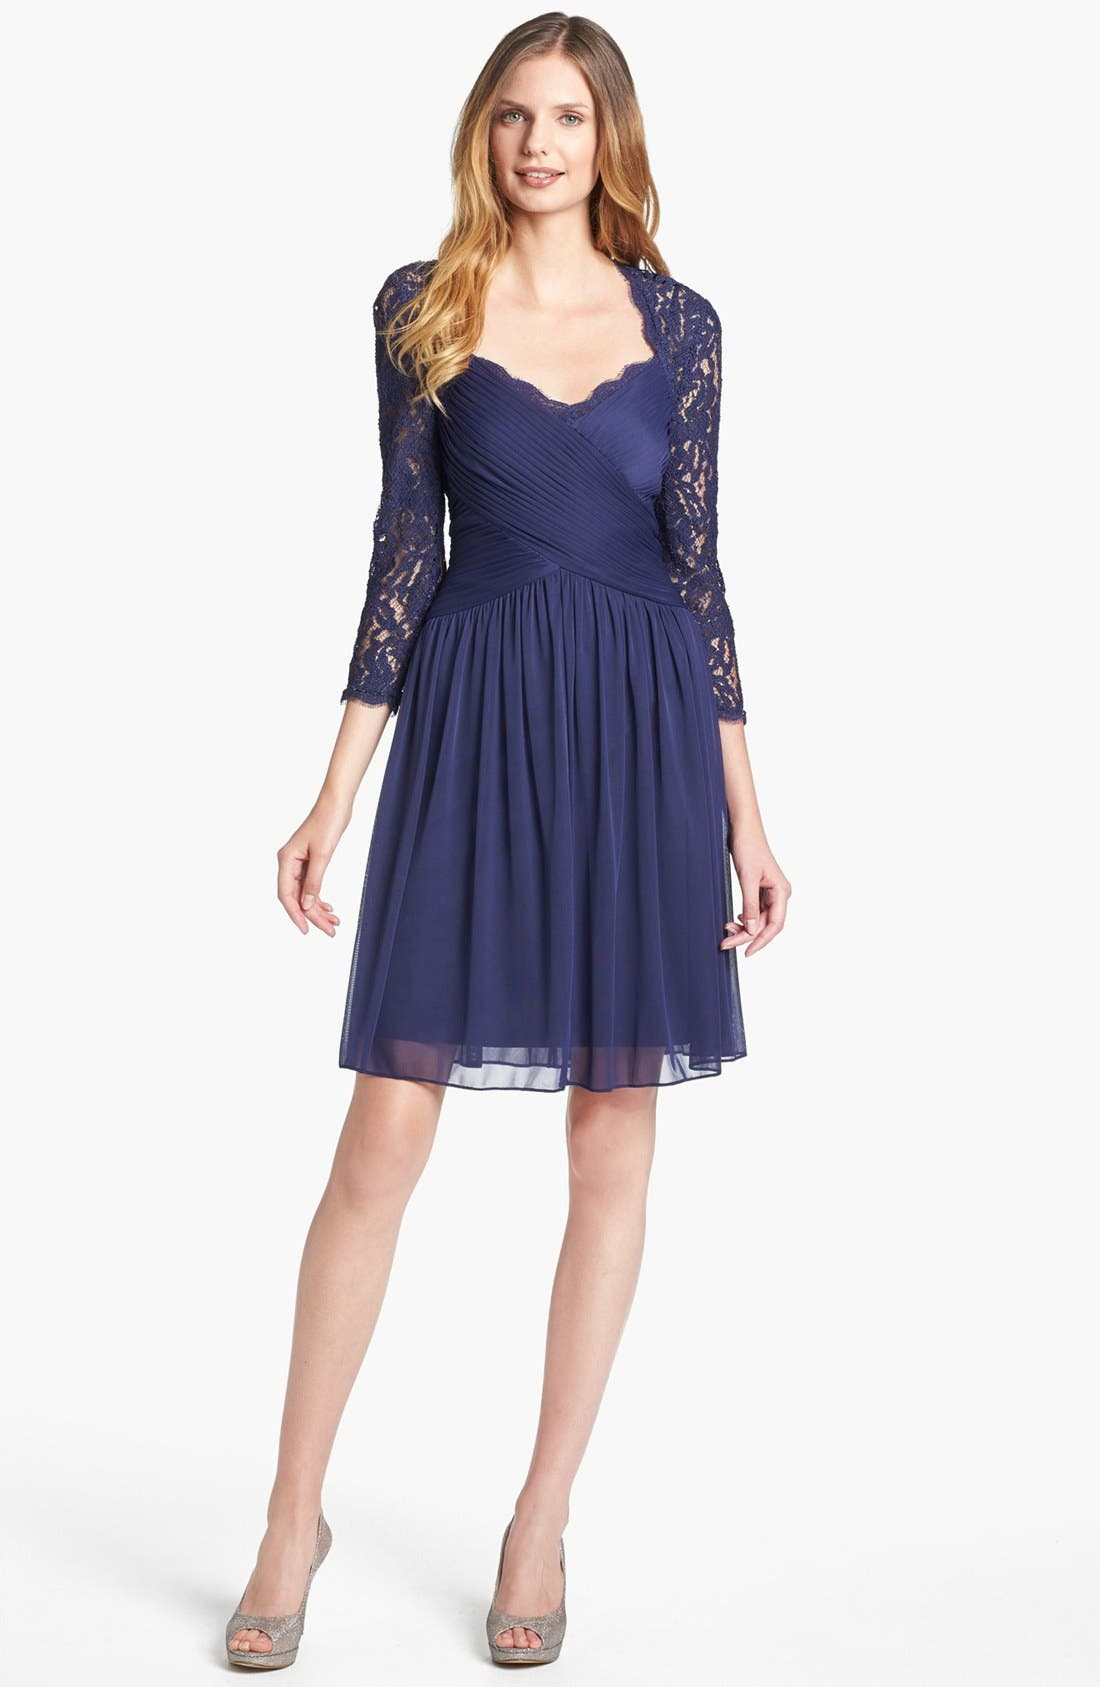 Alternate Image 1 Selected - Adrianna Papell Lace Sleeve Mesh Fit & Flare Dress (Petite)